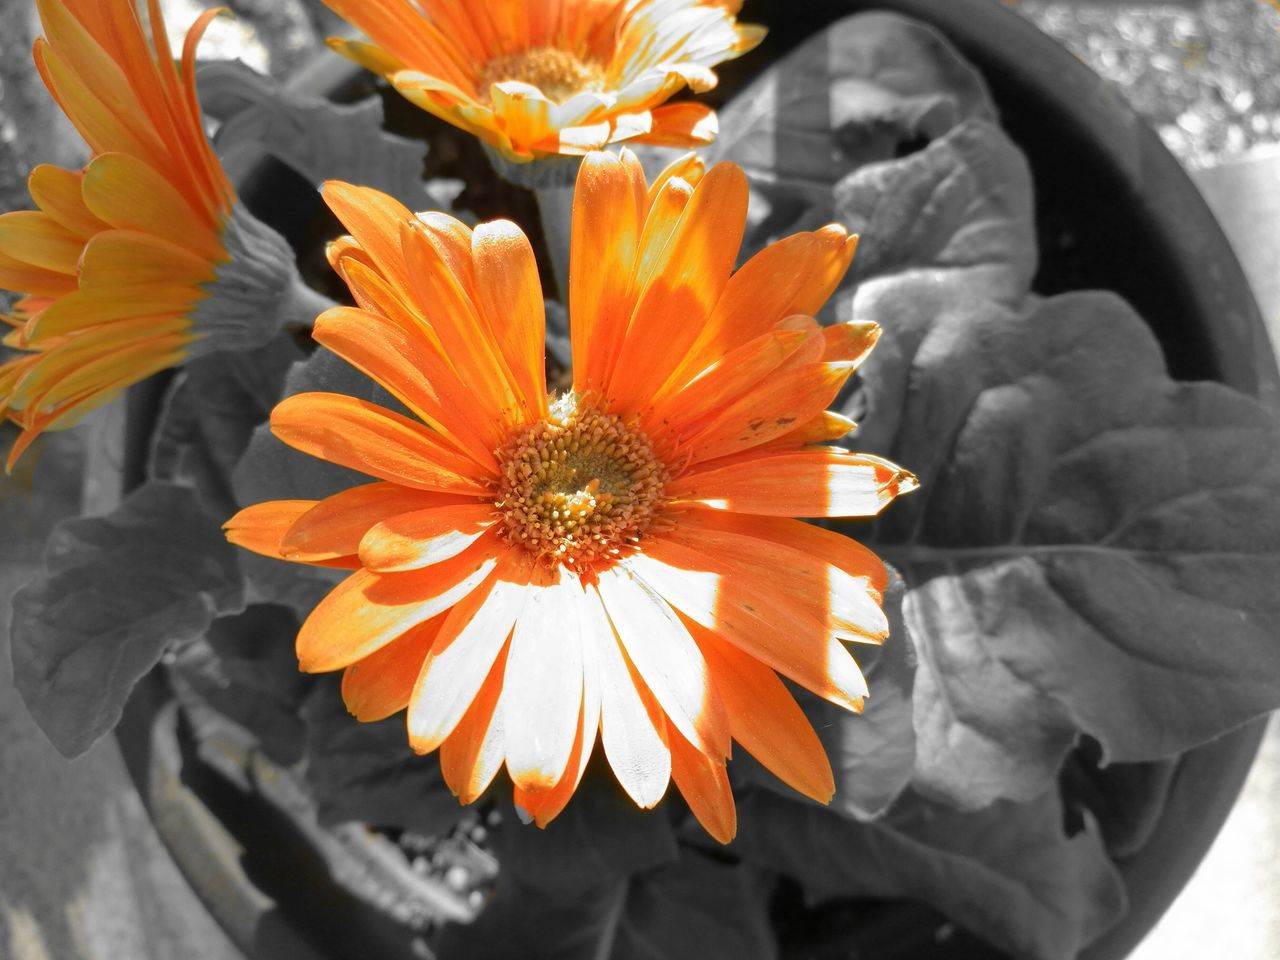 Flower Orange Color Petal Flower Head Beauty In Nature Nature Freshness Fragility Plant Outdoors Day No People Close-up Growth Animal Head  Nature Summer Travel Destinations Beauty In Nature The Great Outdoors - 2017 EyeEm Awards Honor8 High Contrast Edit Splash Of Color Black And White